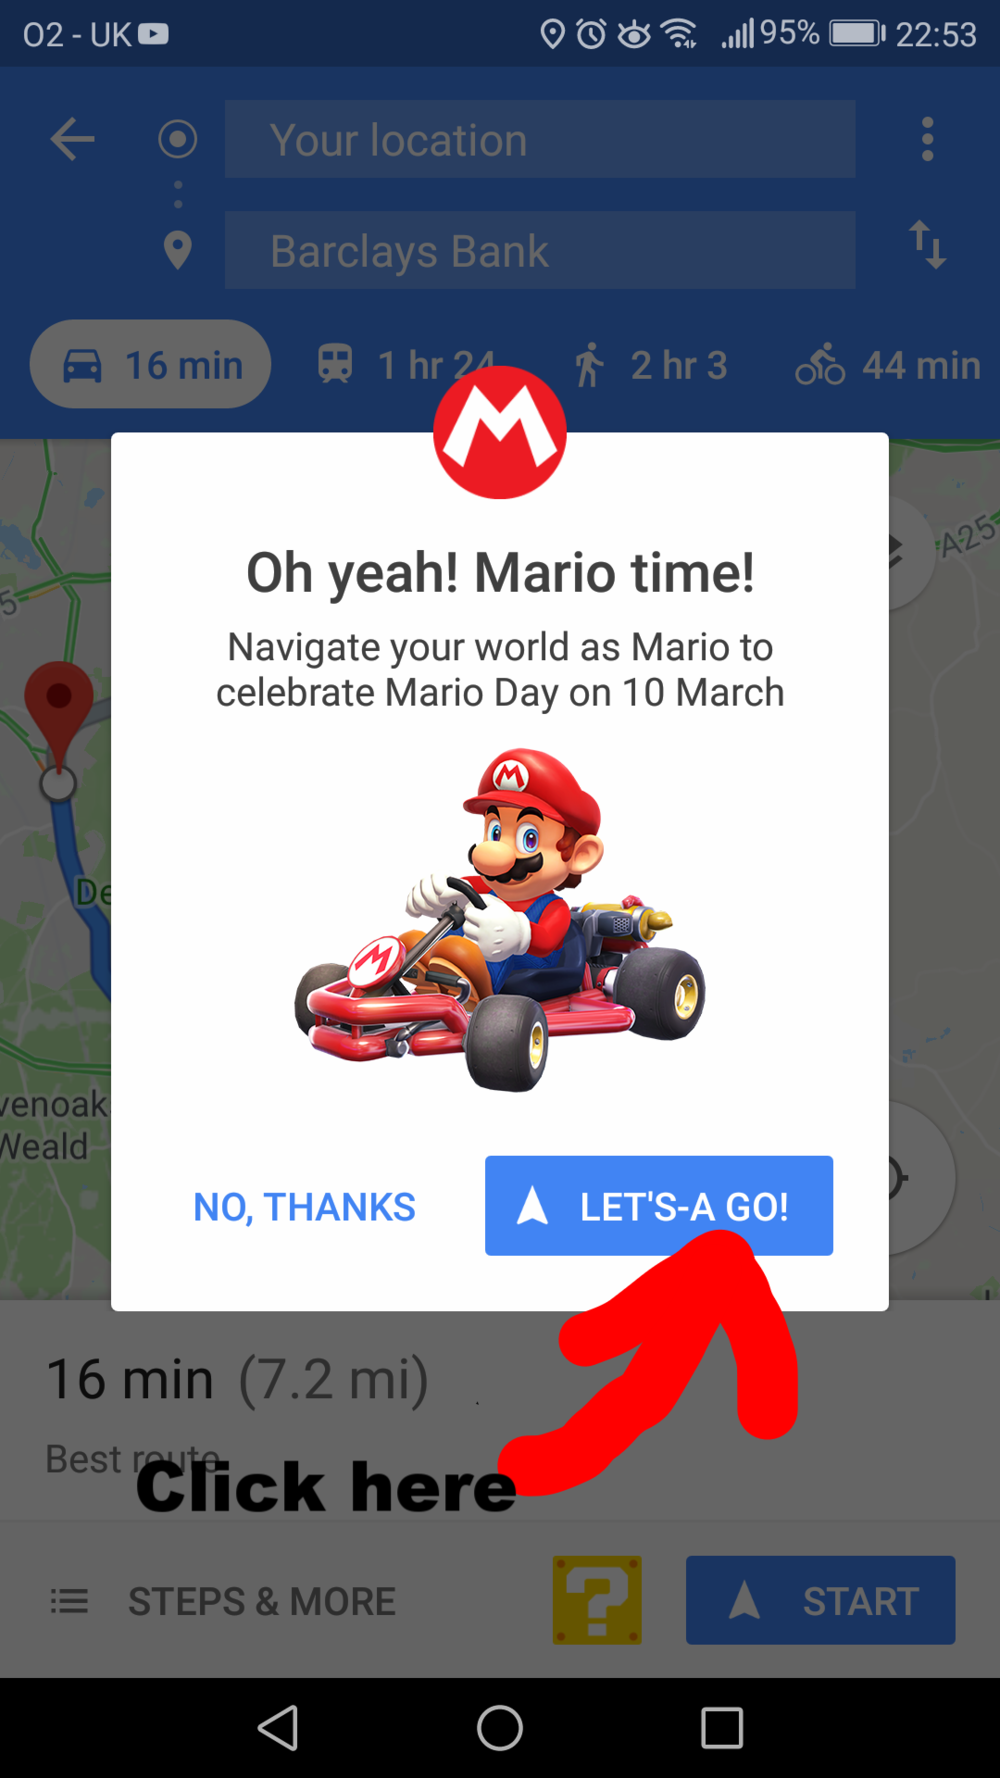 Mario Kart in Google Maps